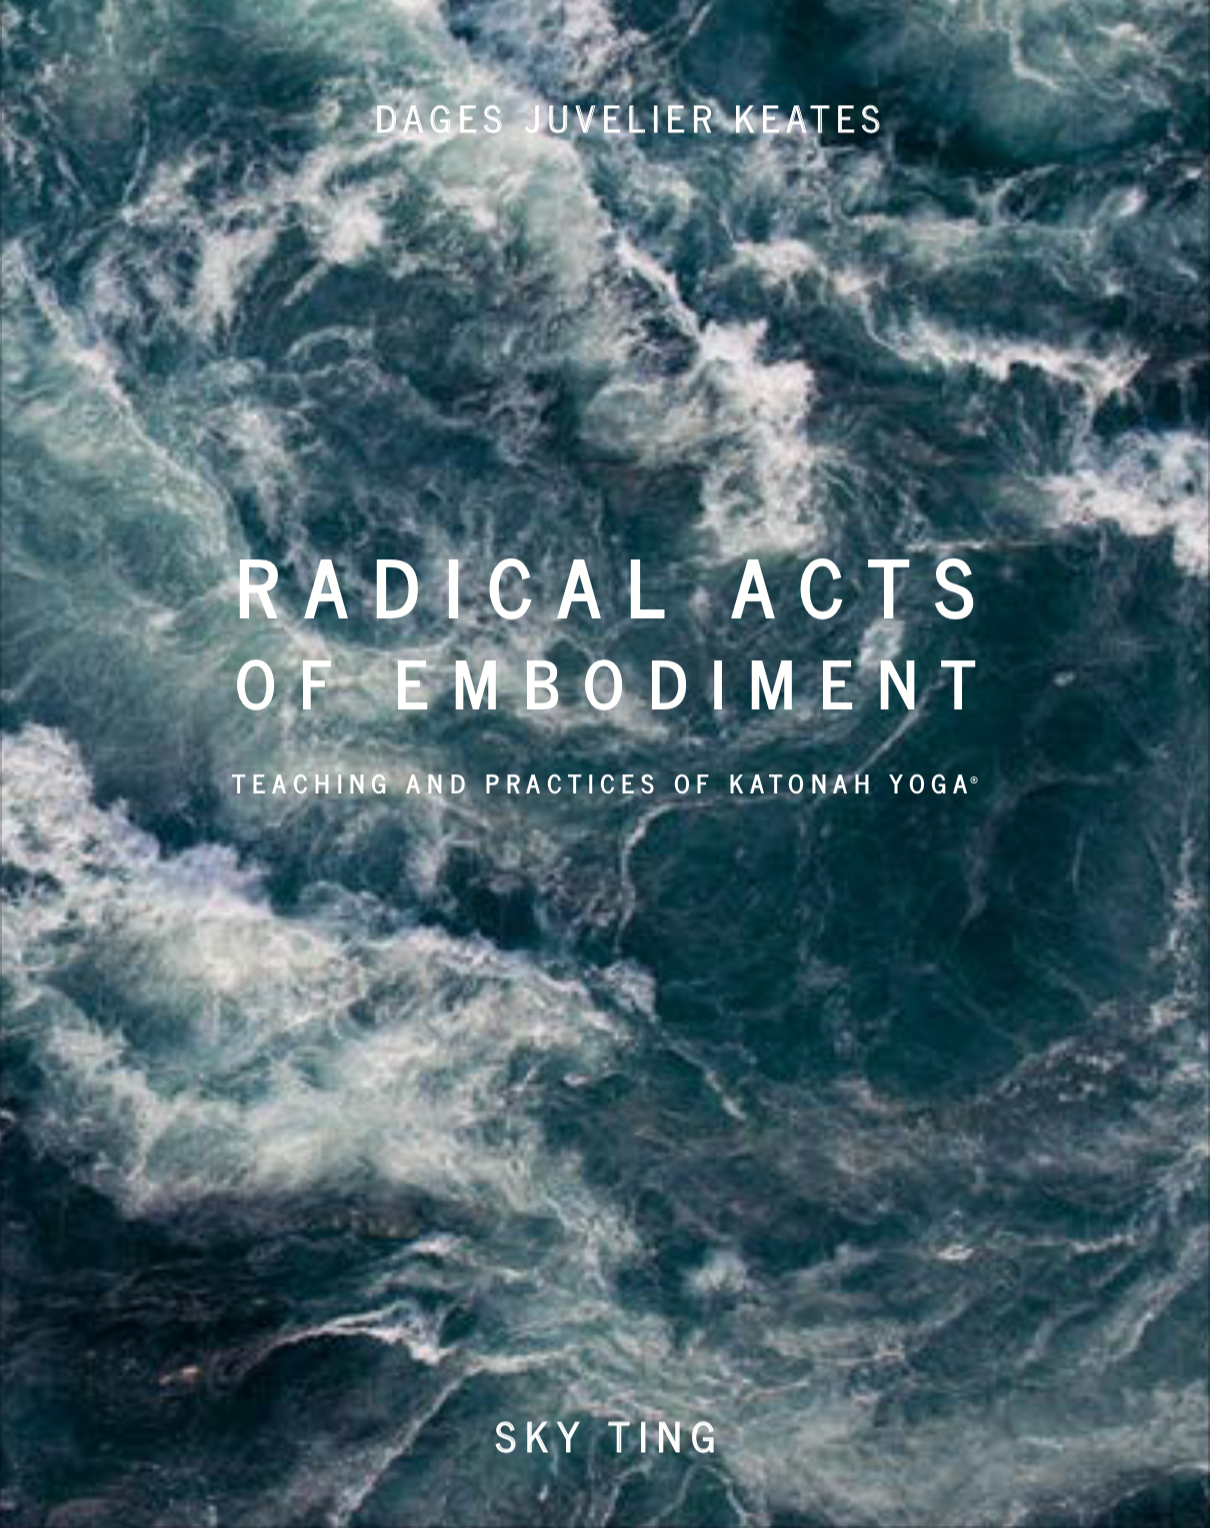 Radical Acts of Embodiment Hard Copy — $75.00